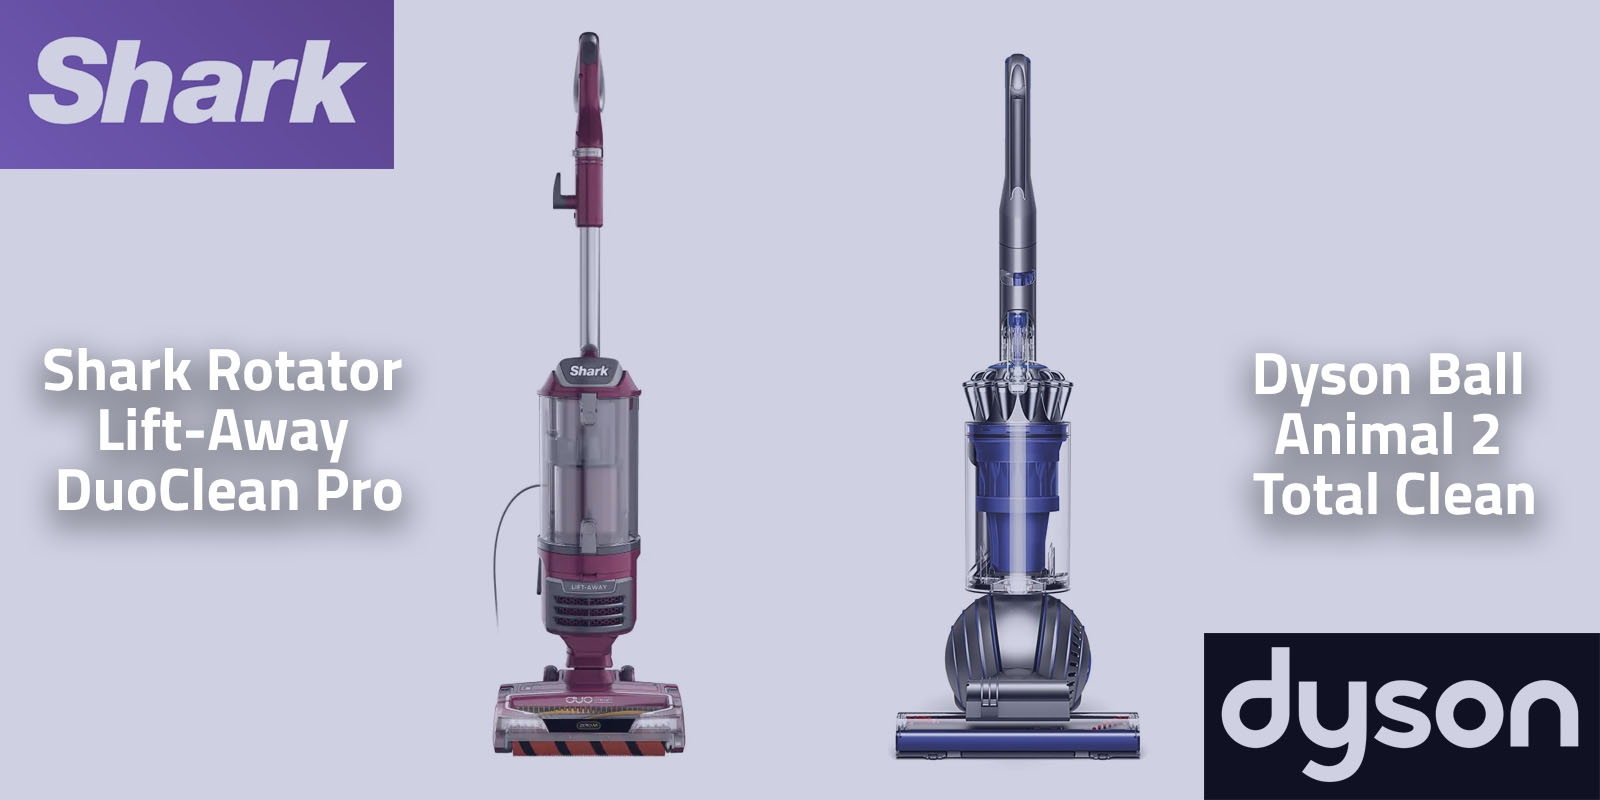 Shark Rotator Lift-Away DuoClean Pro vs Dyson Ball Animal 2 Total Clean